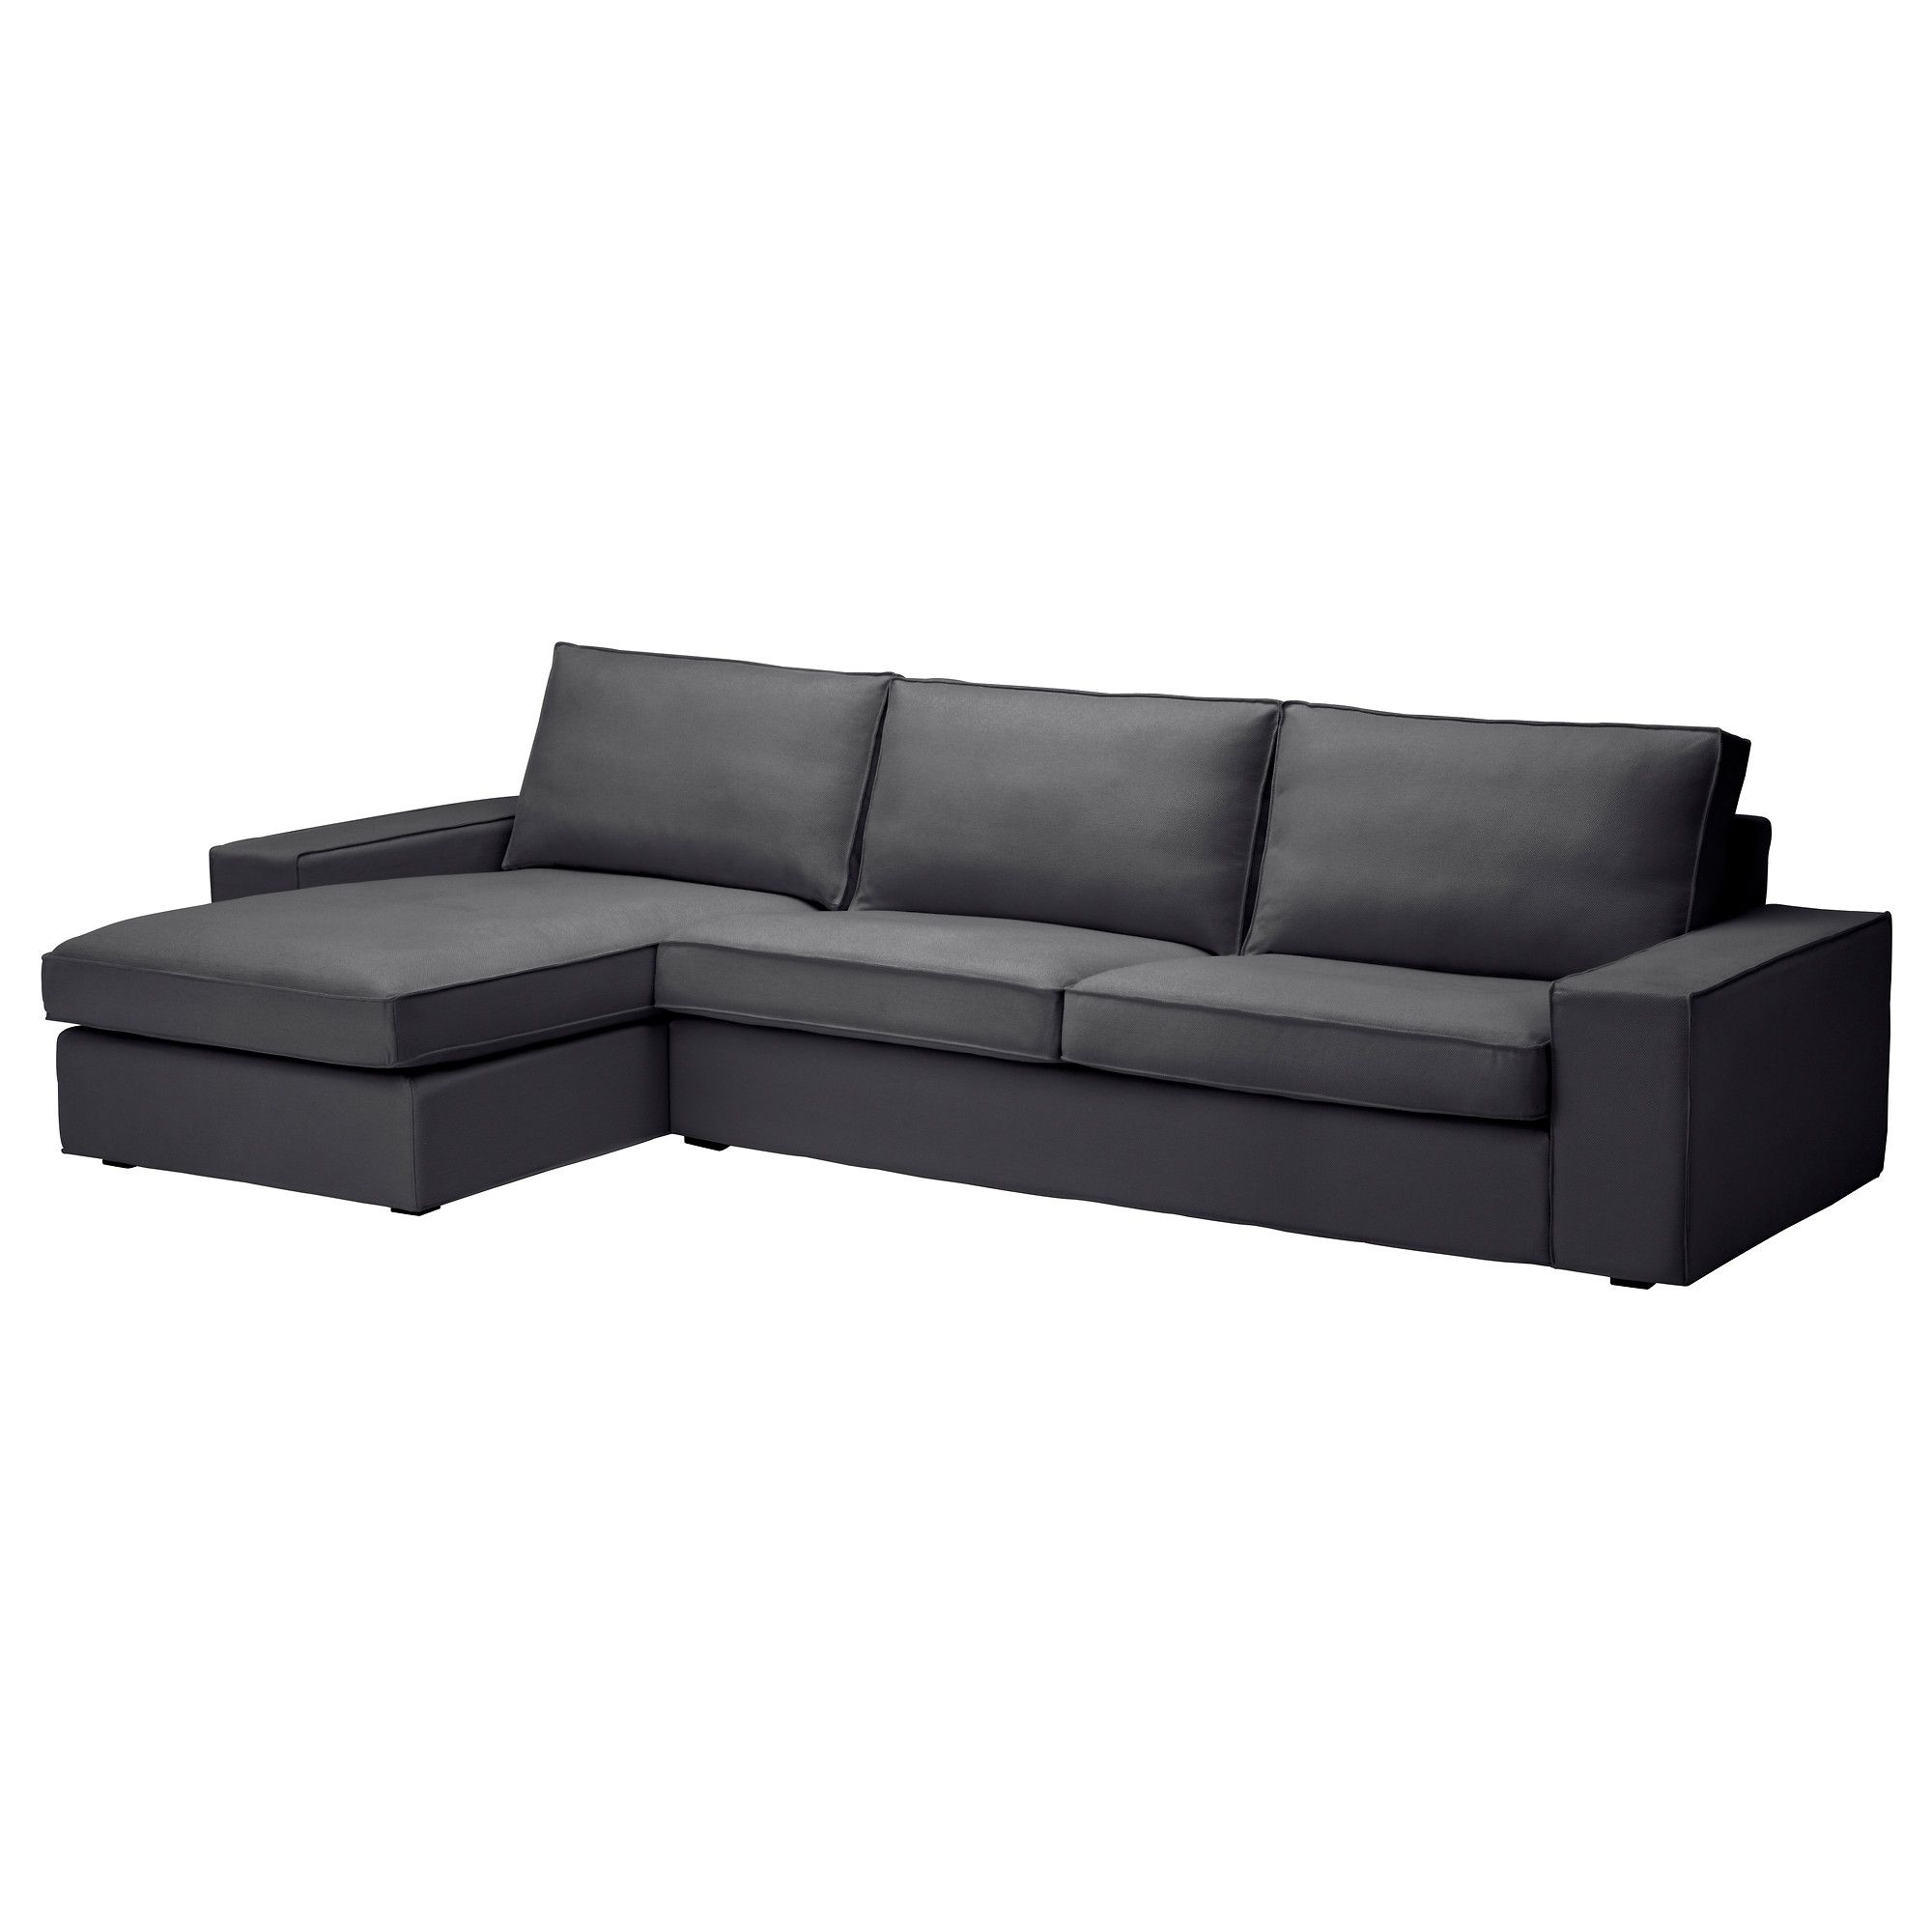 kivik sofa and chaise lounge dansbo dark gray sofa